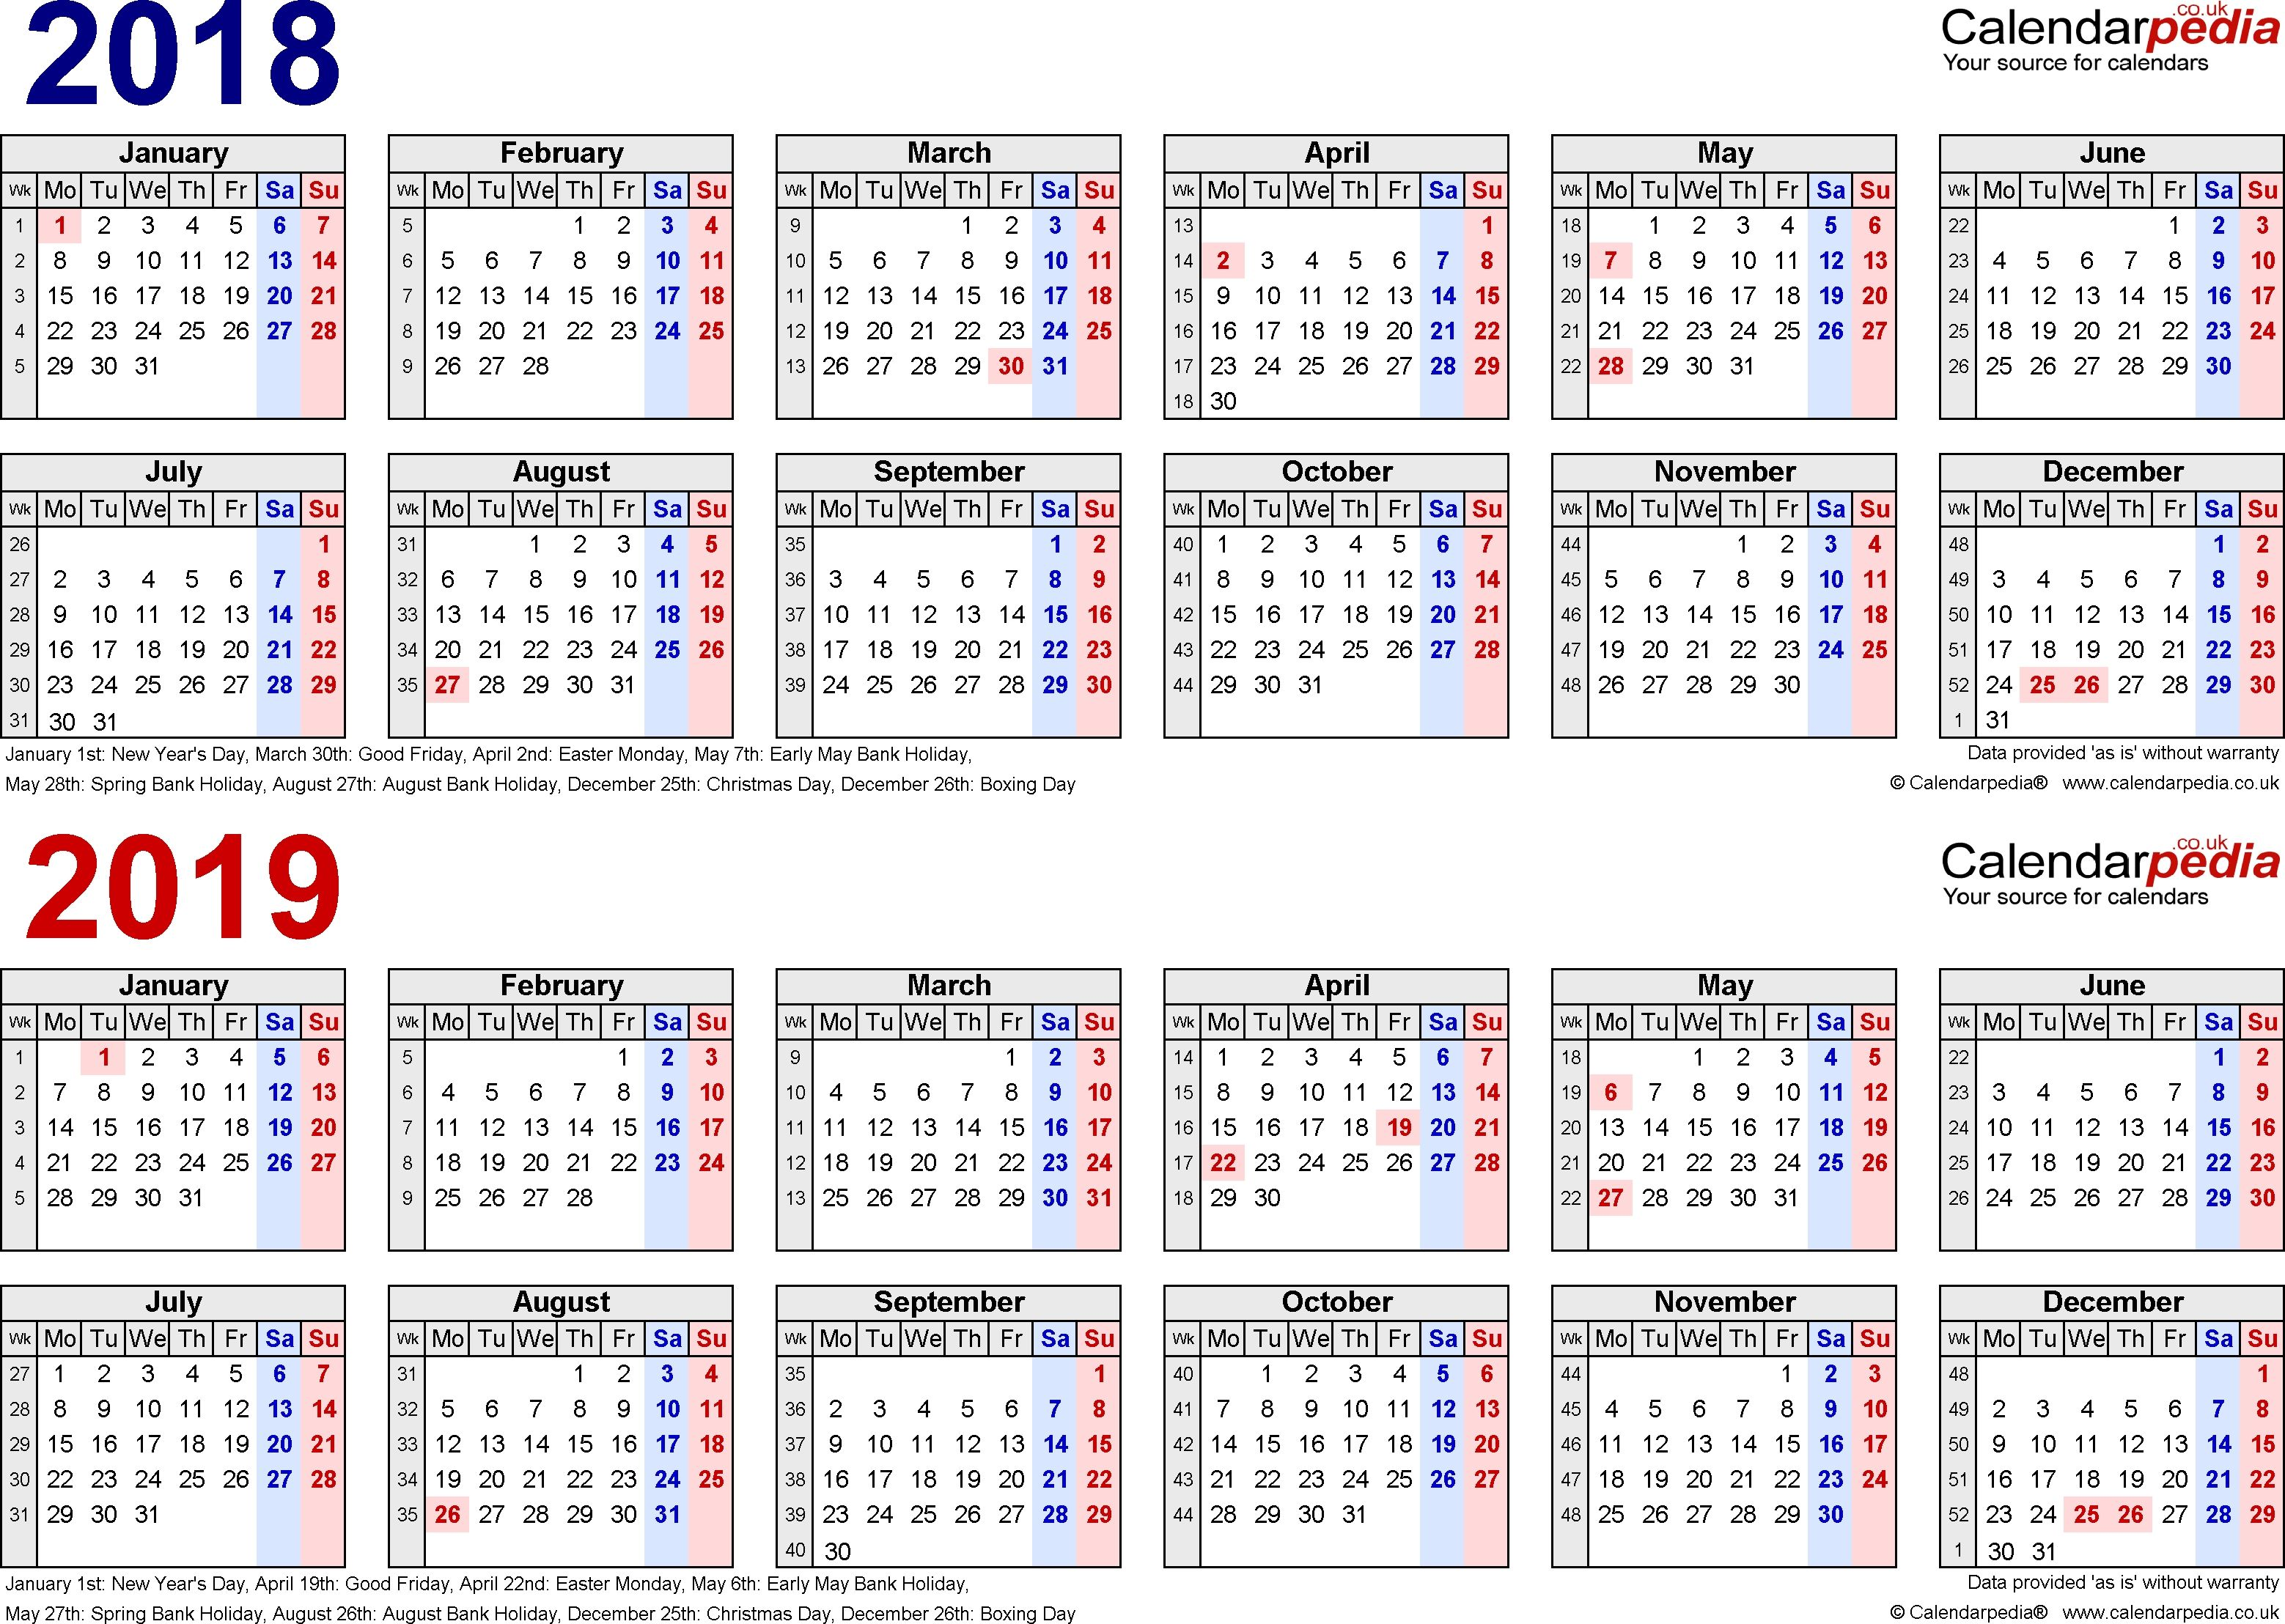 Two Year Calendars For 2018 & 2019 (Uk) For Word Free